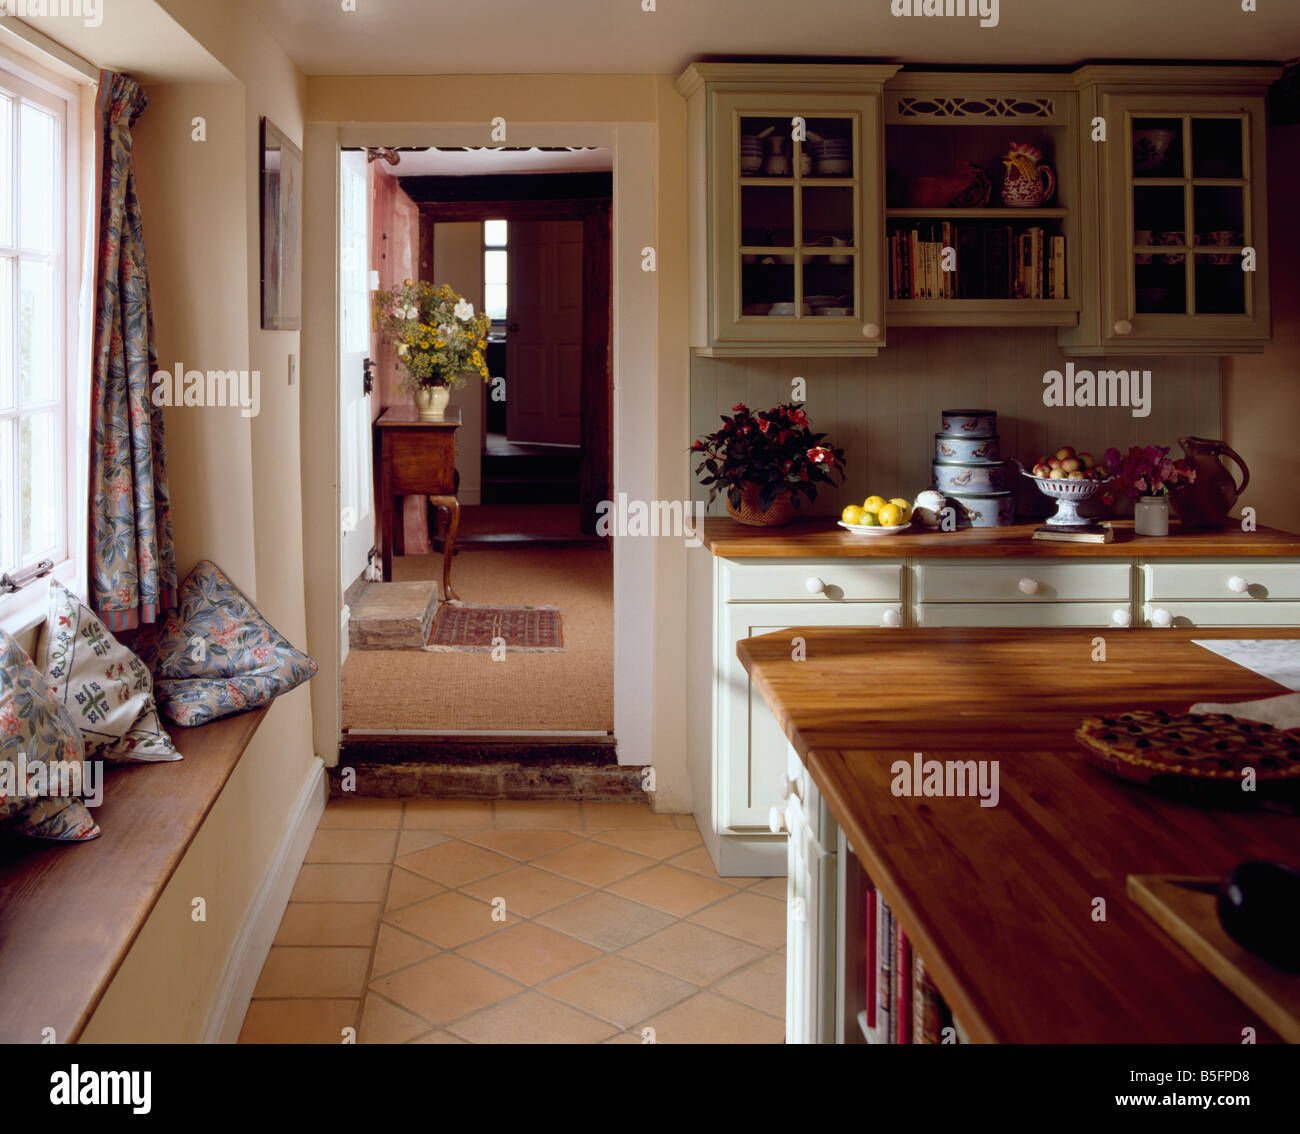 Kitchens With Terracotta Floors Cushions On Windowseat Of Country Kitchen With Terracotta Tiled